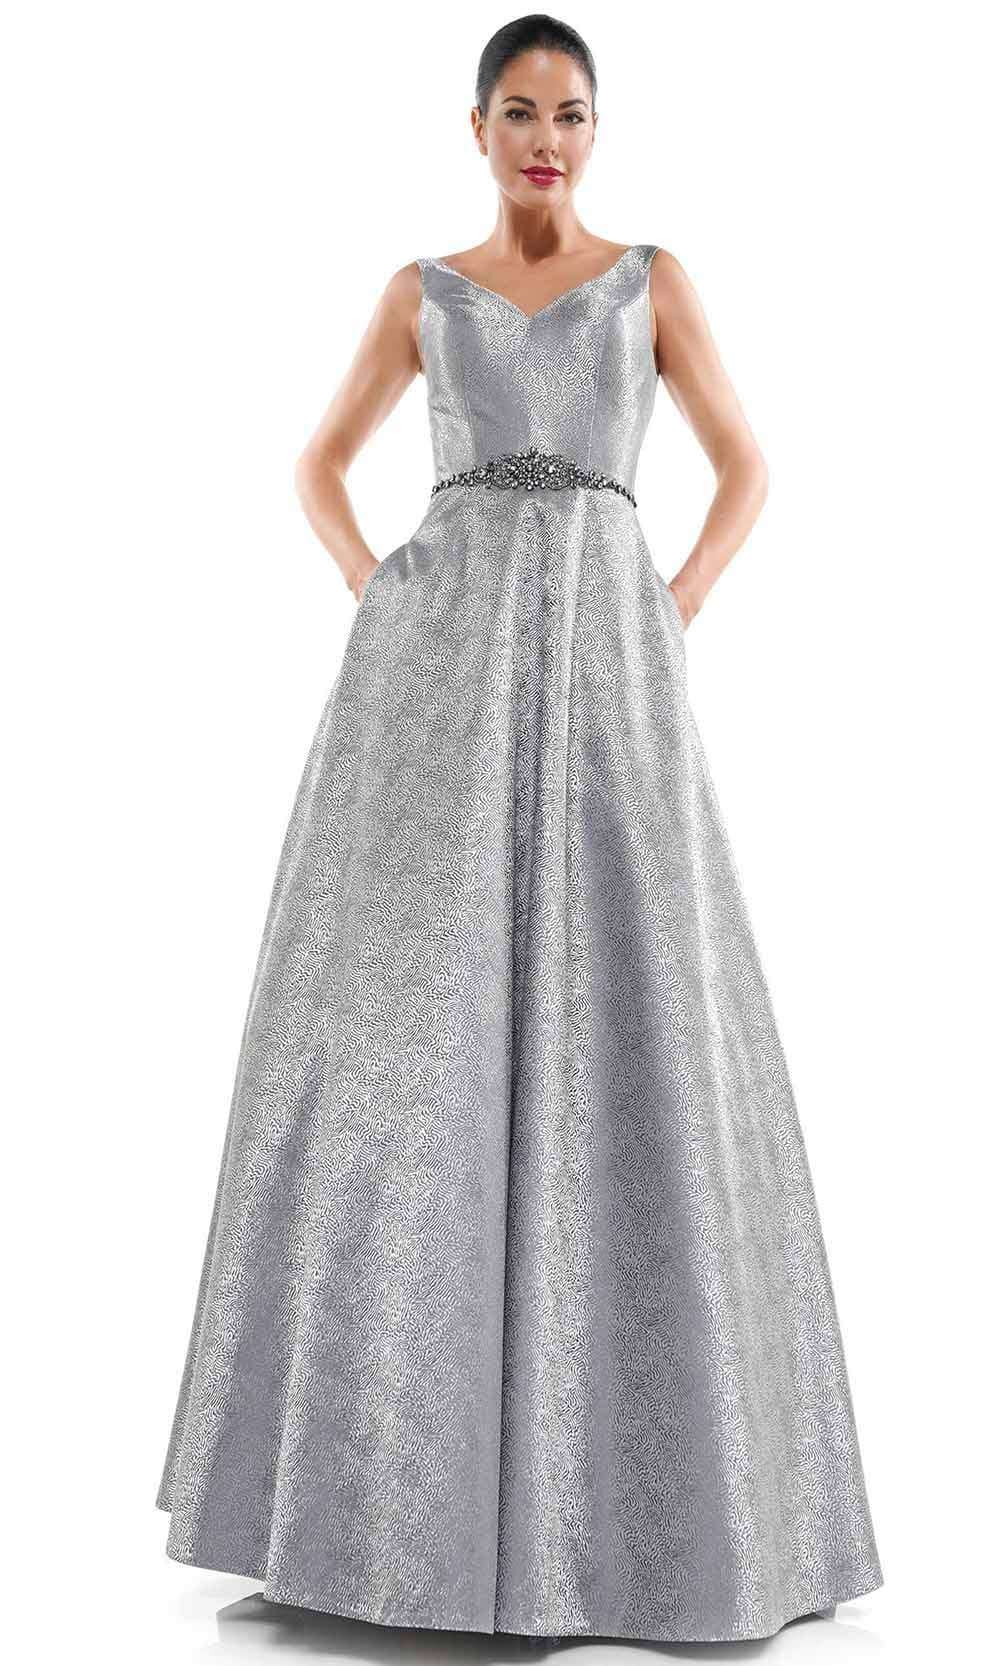 Marsoni by Colors - MV1033 Sleeveless V-Neck Beaded Waist Brocade Gown Mother of the Bride Dresses 4 / Silver